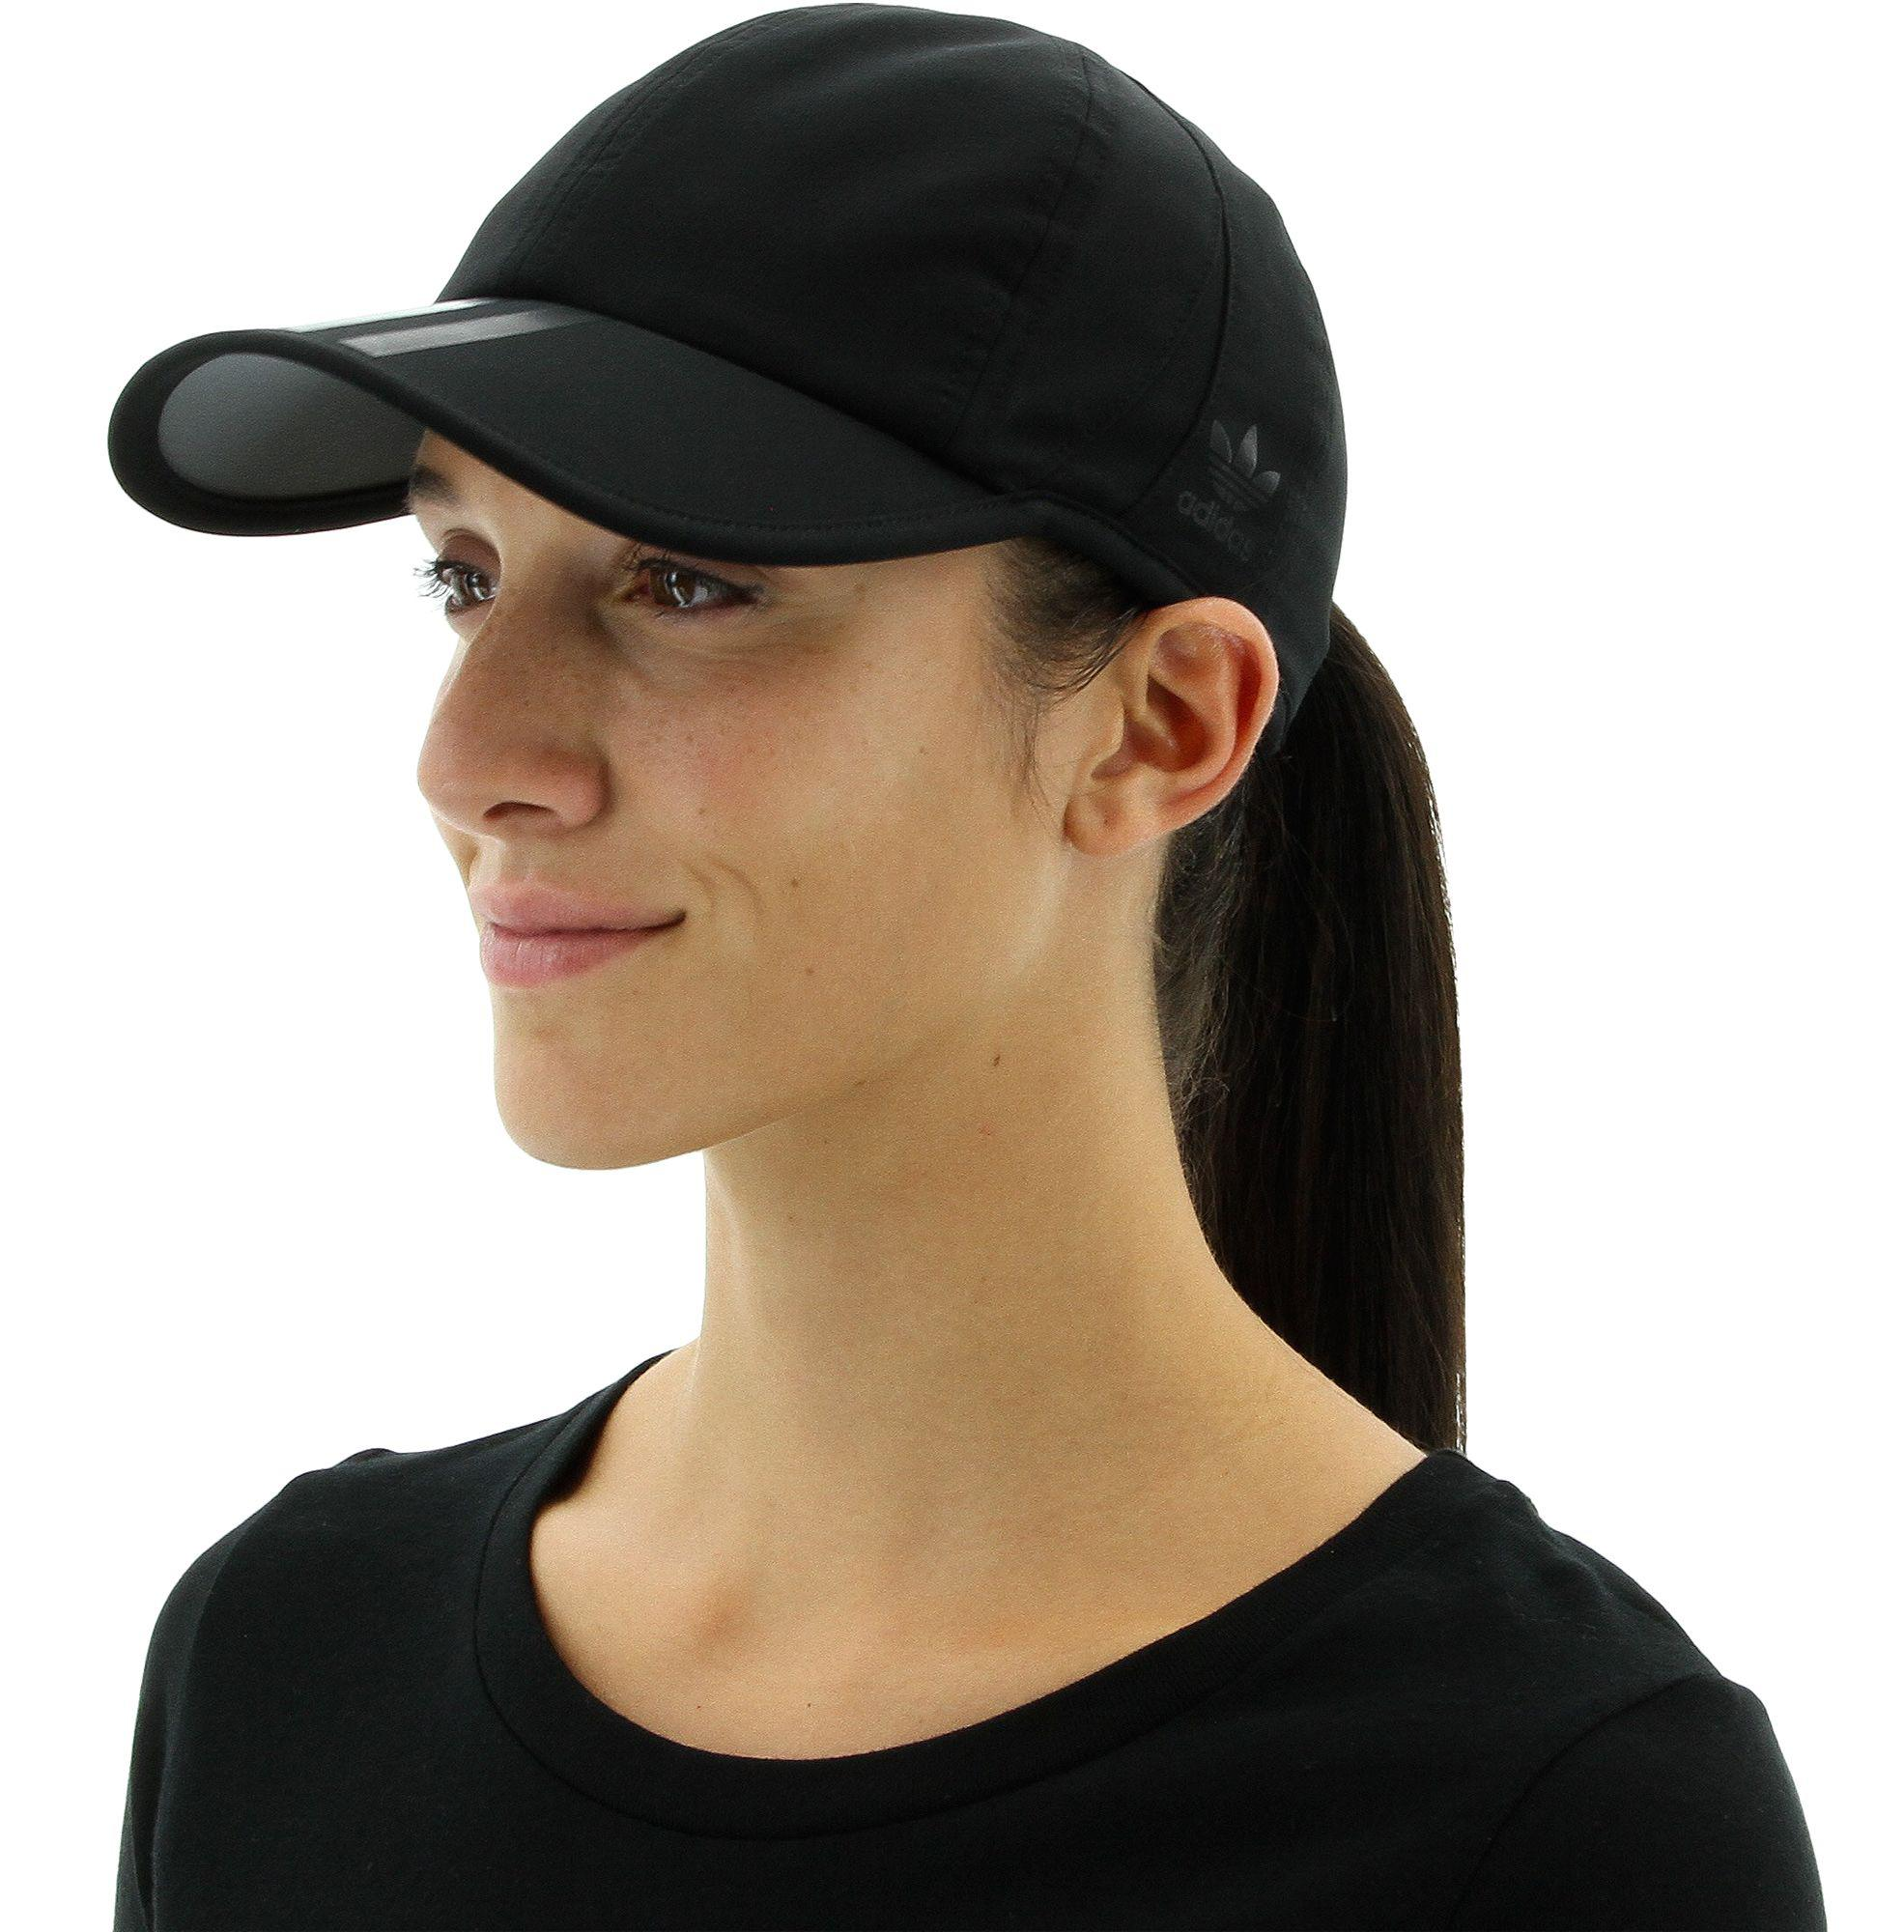 Lyst - adidas 3-stripes Trainer Hat in Black 0f4ea8d7e92